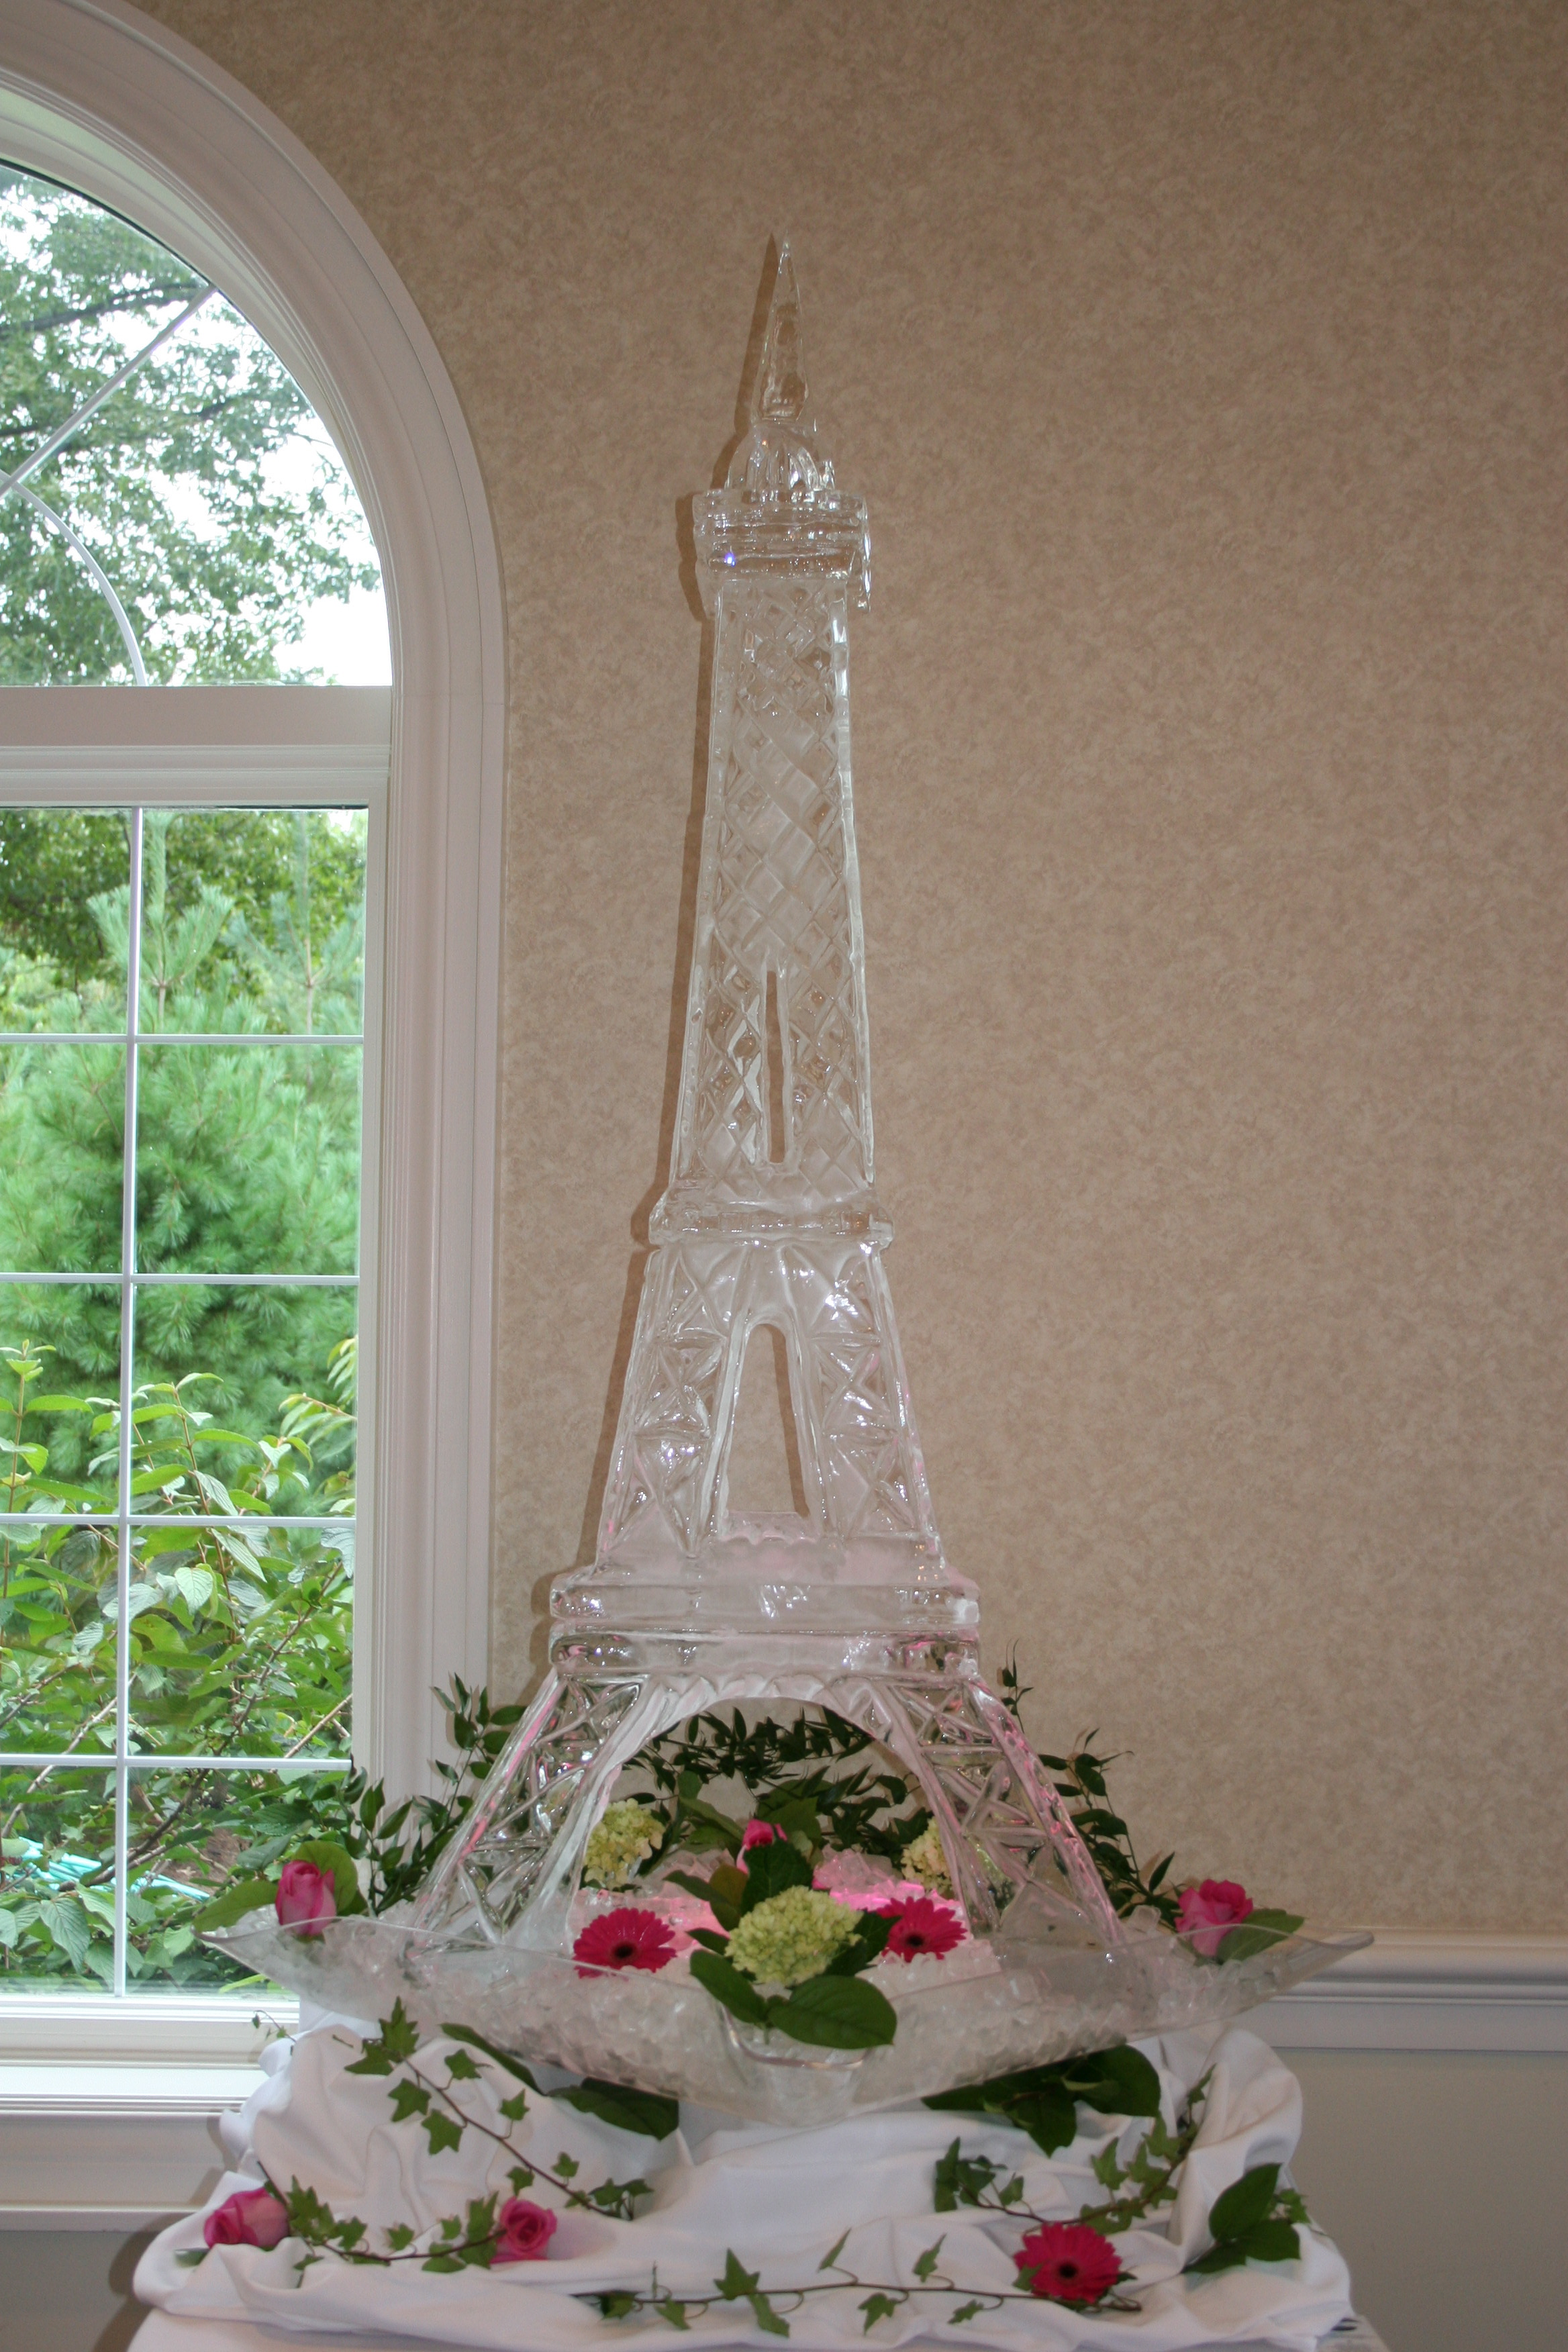 Ice Sculpture_Eiffel Tower.JPG